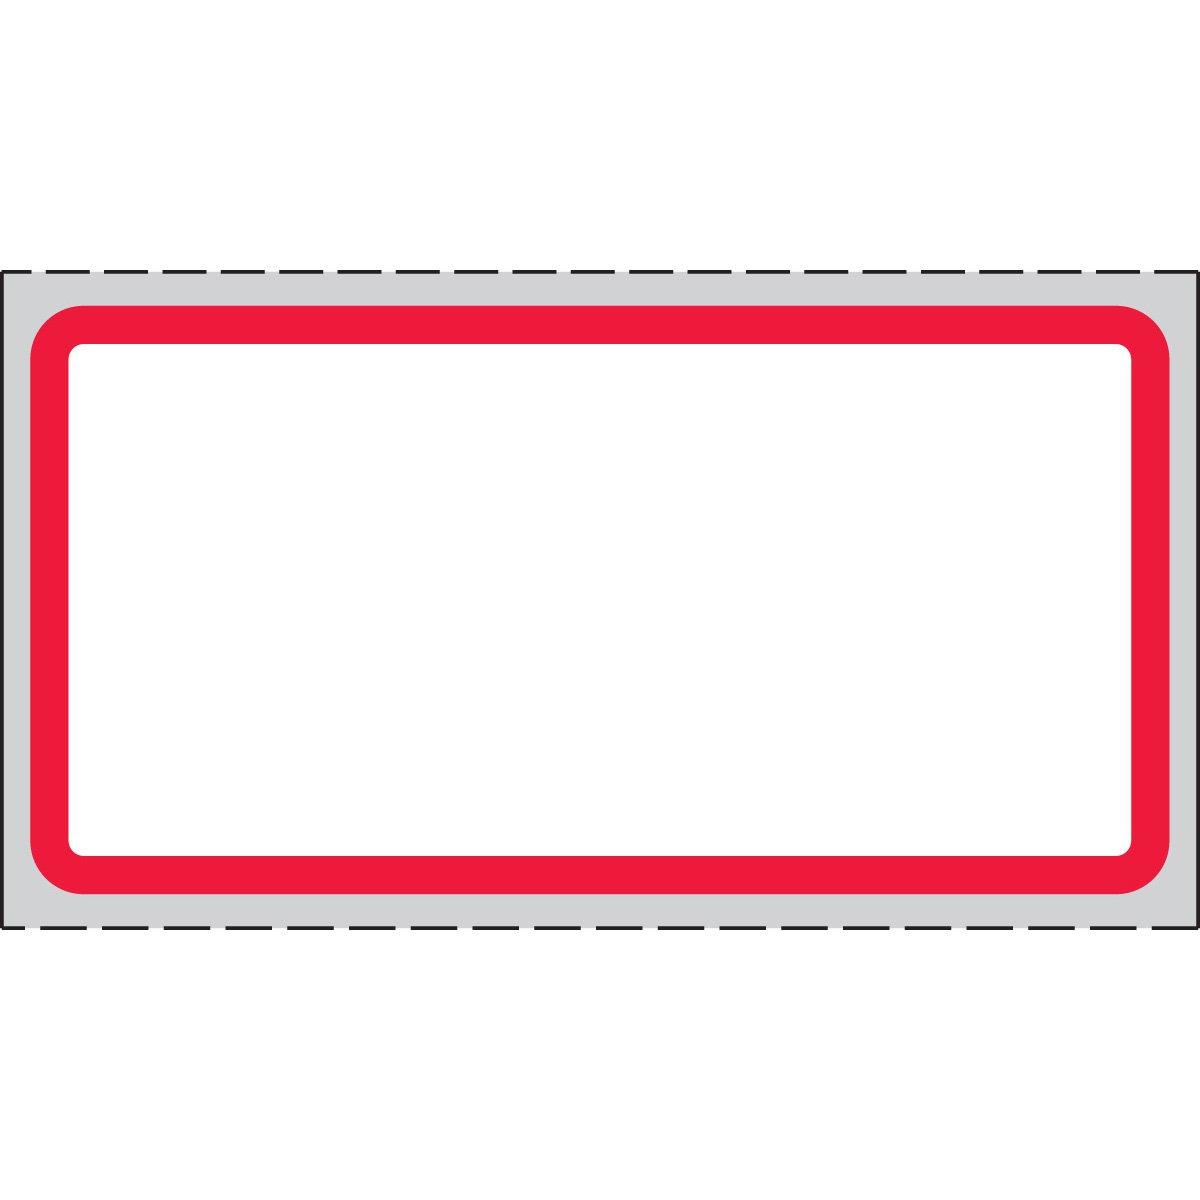 PDC Healthcare THERMDRB3 Paper Labels for Thermal Printers, Permanent Adhesive, Direct Thermal Labels, Compatible with Zebra, Intermec, Datamax and Other Printers, 2'' Width x 1'' Length, 3'' Core Size, White with Red Border (Case of 40000)